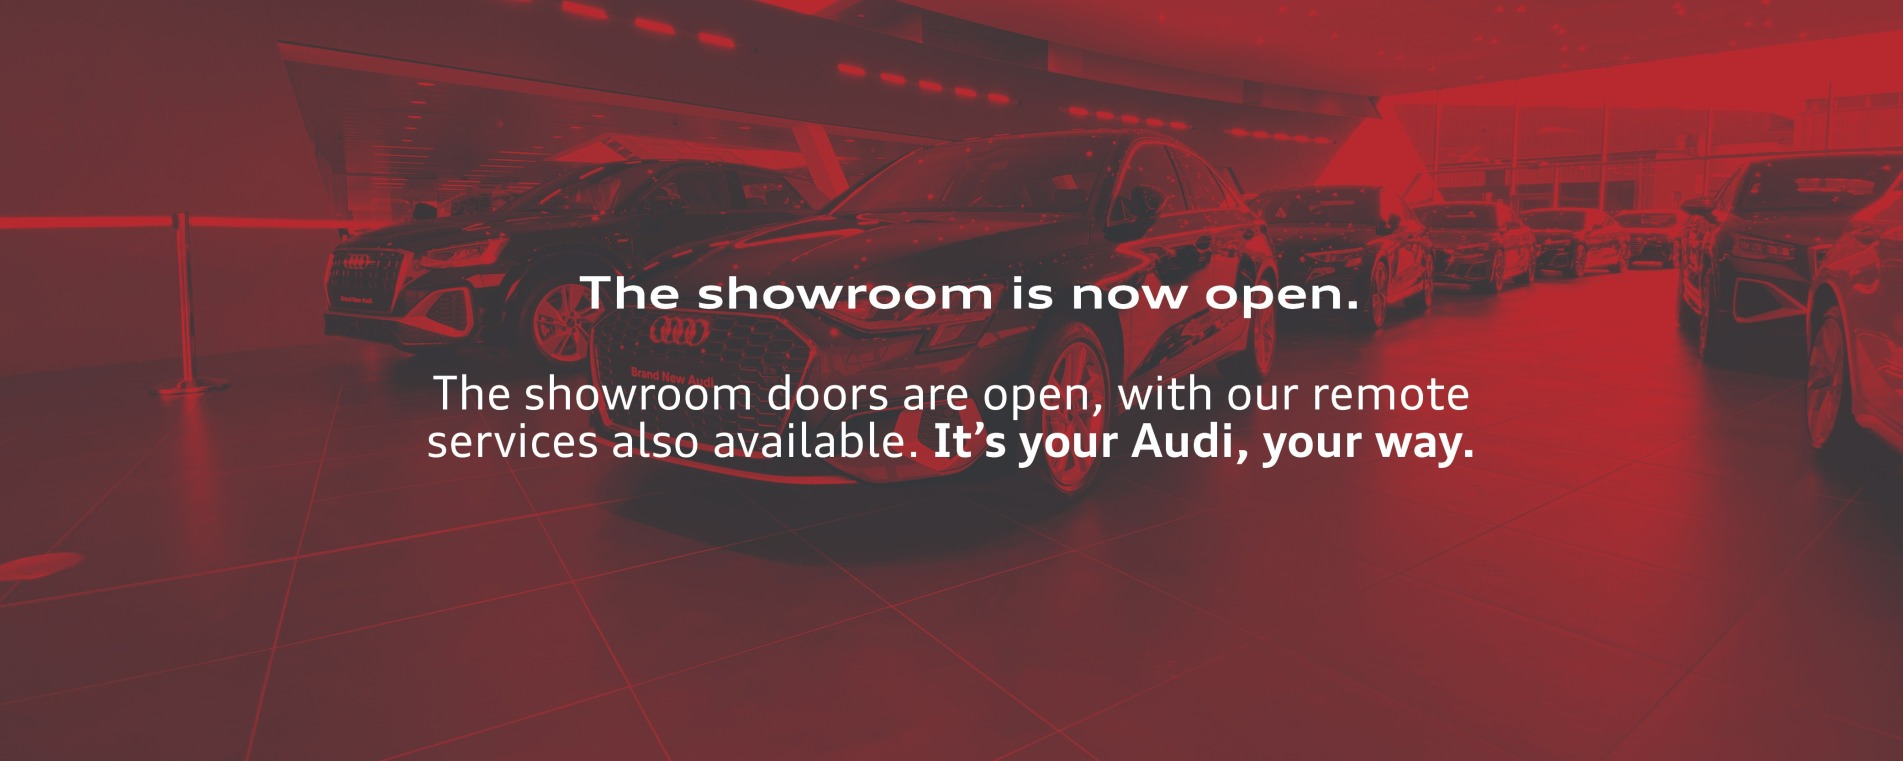 The showroom reopens Monday 12th April.